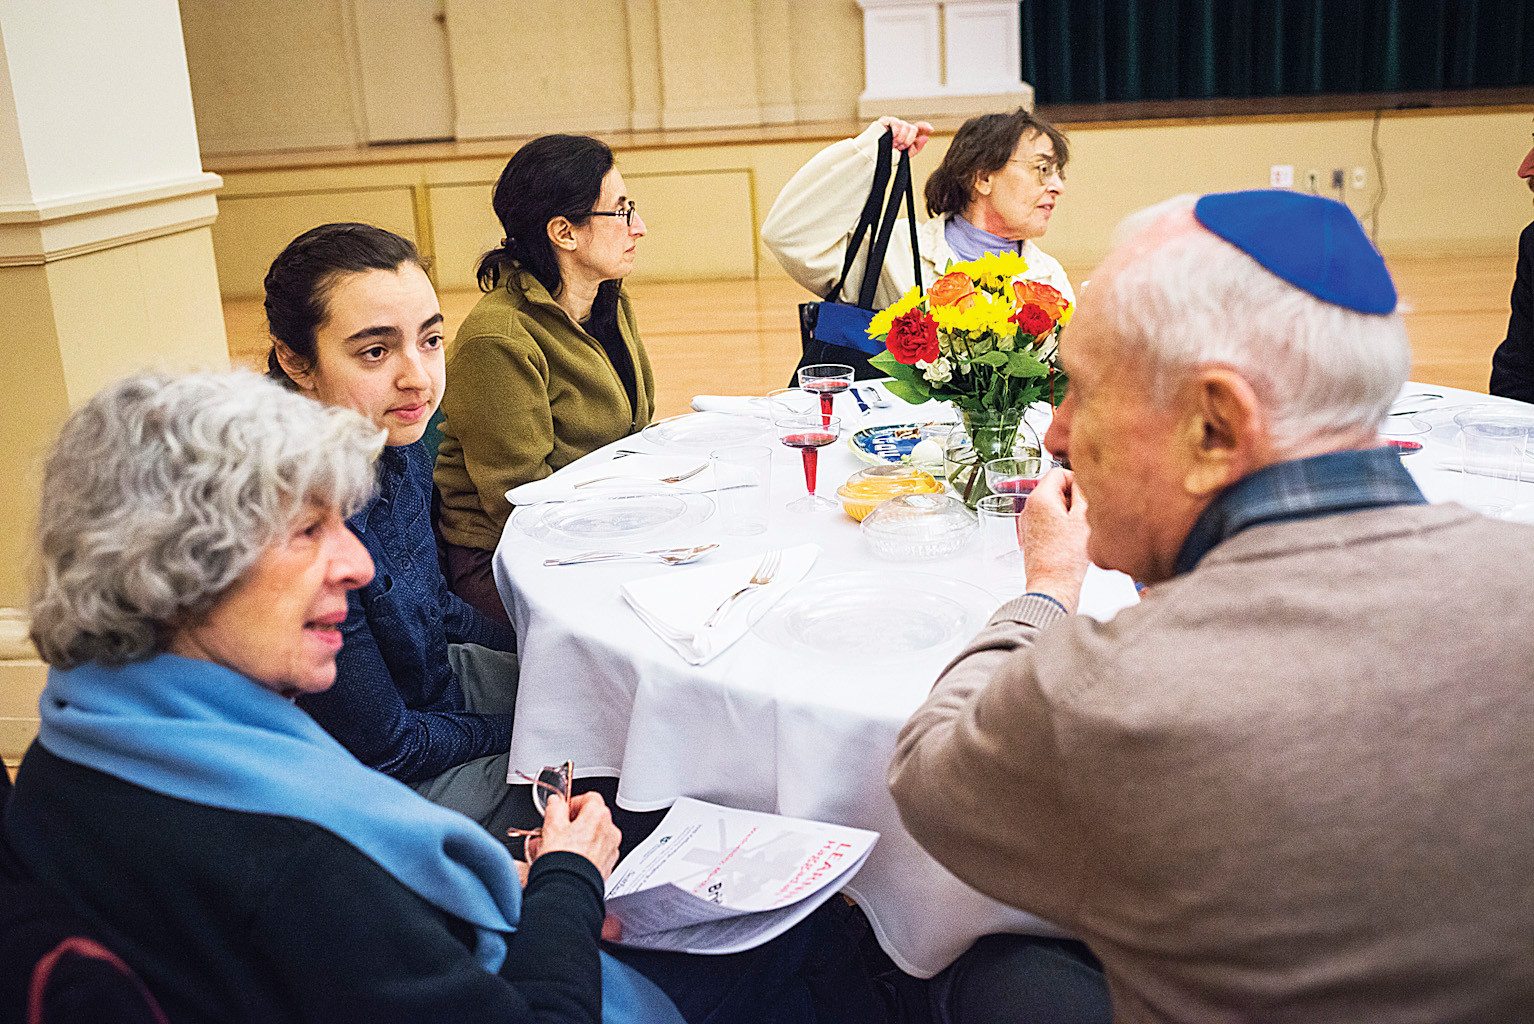 Seder attendees trade stories while at the Manhattan College celebration.